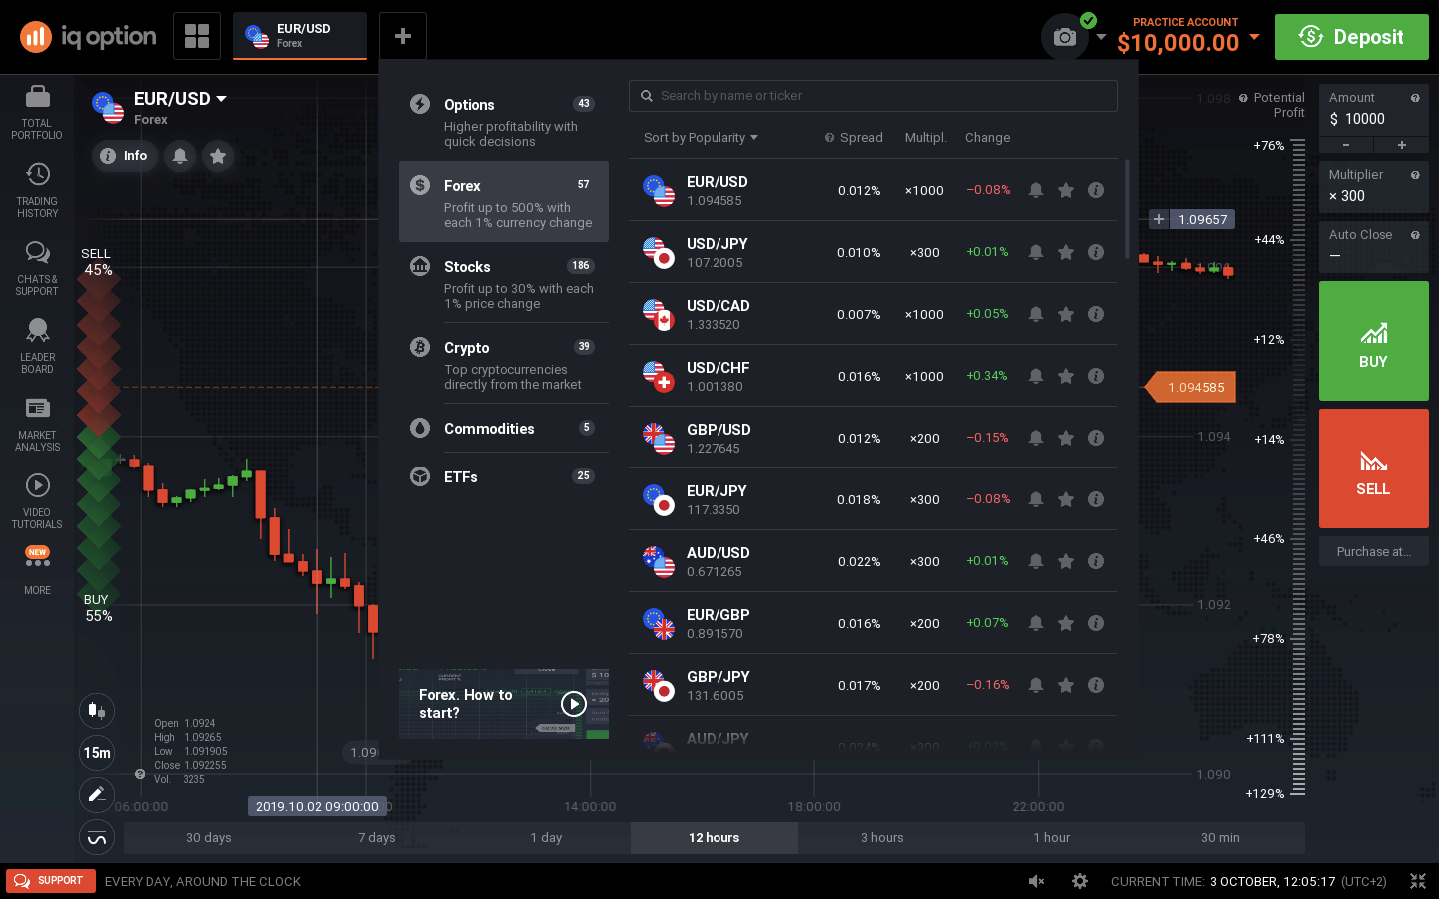 Come si usa IQ Option nella pratica: video tutorial - trovatuttonline.it